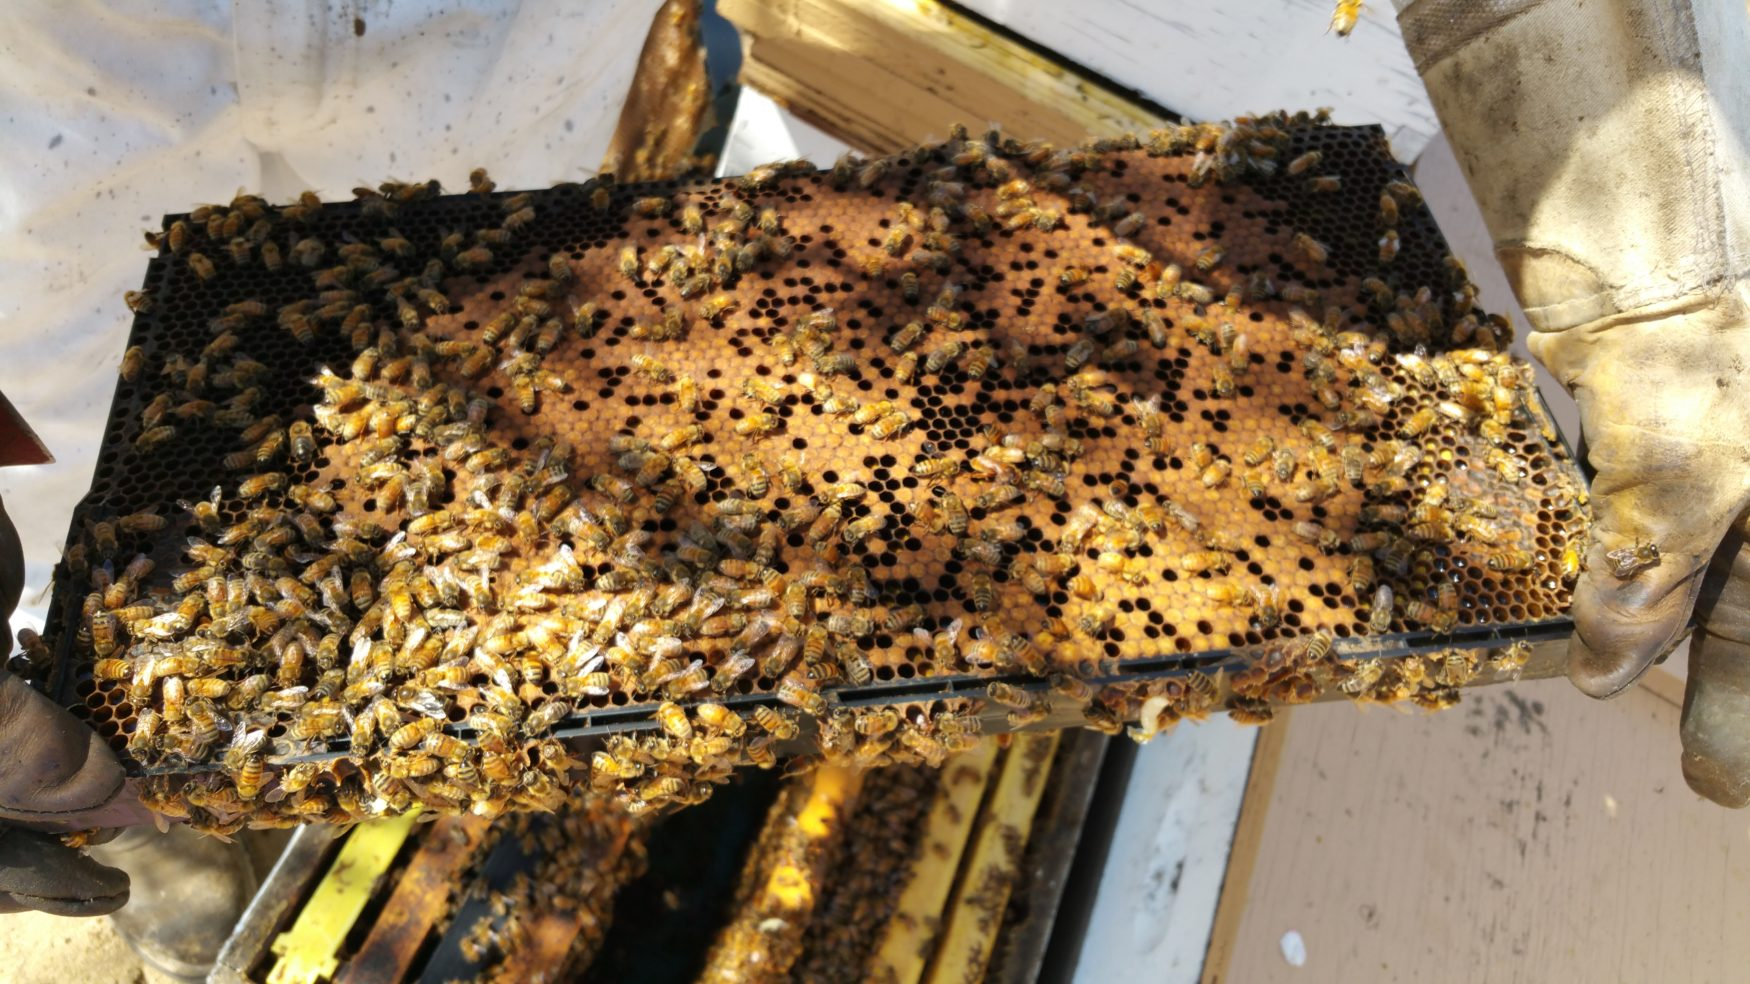 Hive Inspections